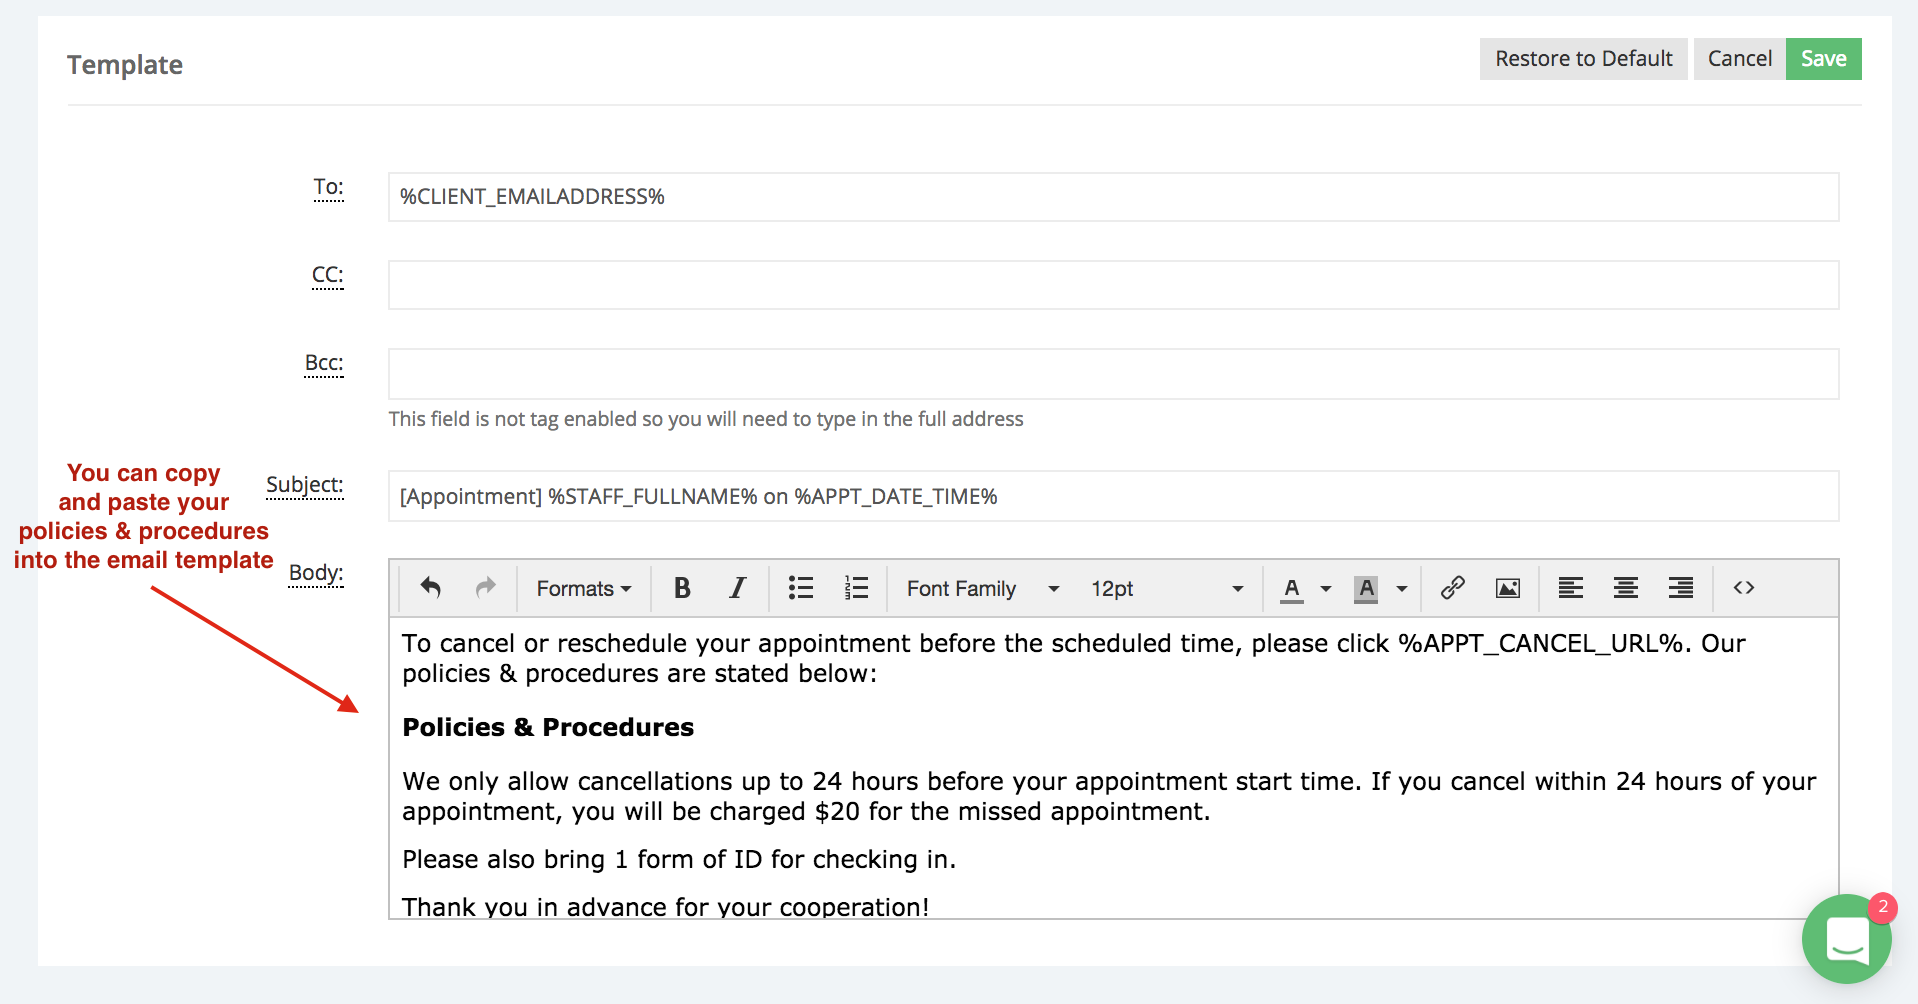 Add your guidelines to the new appointment email